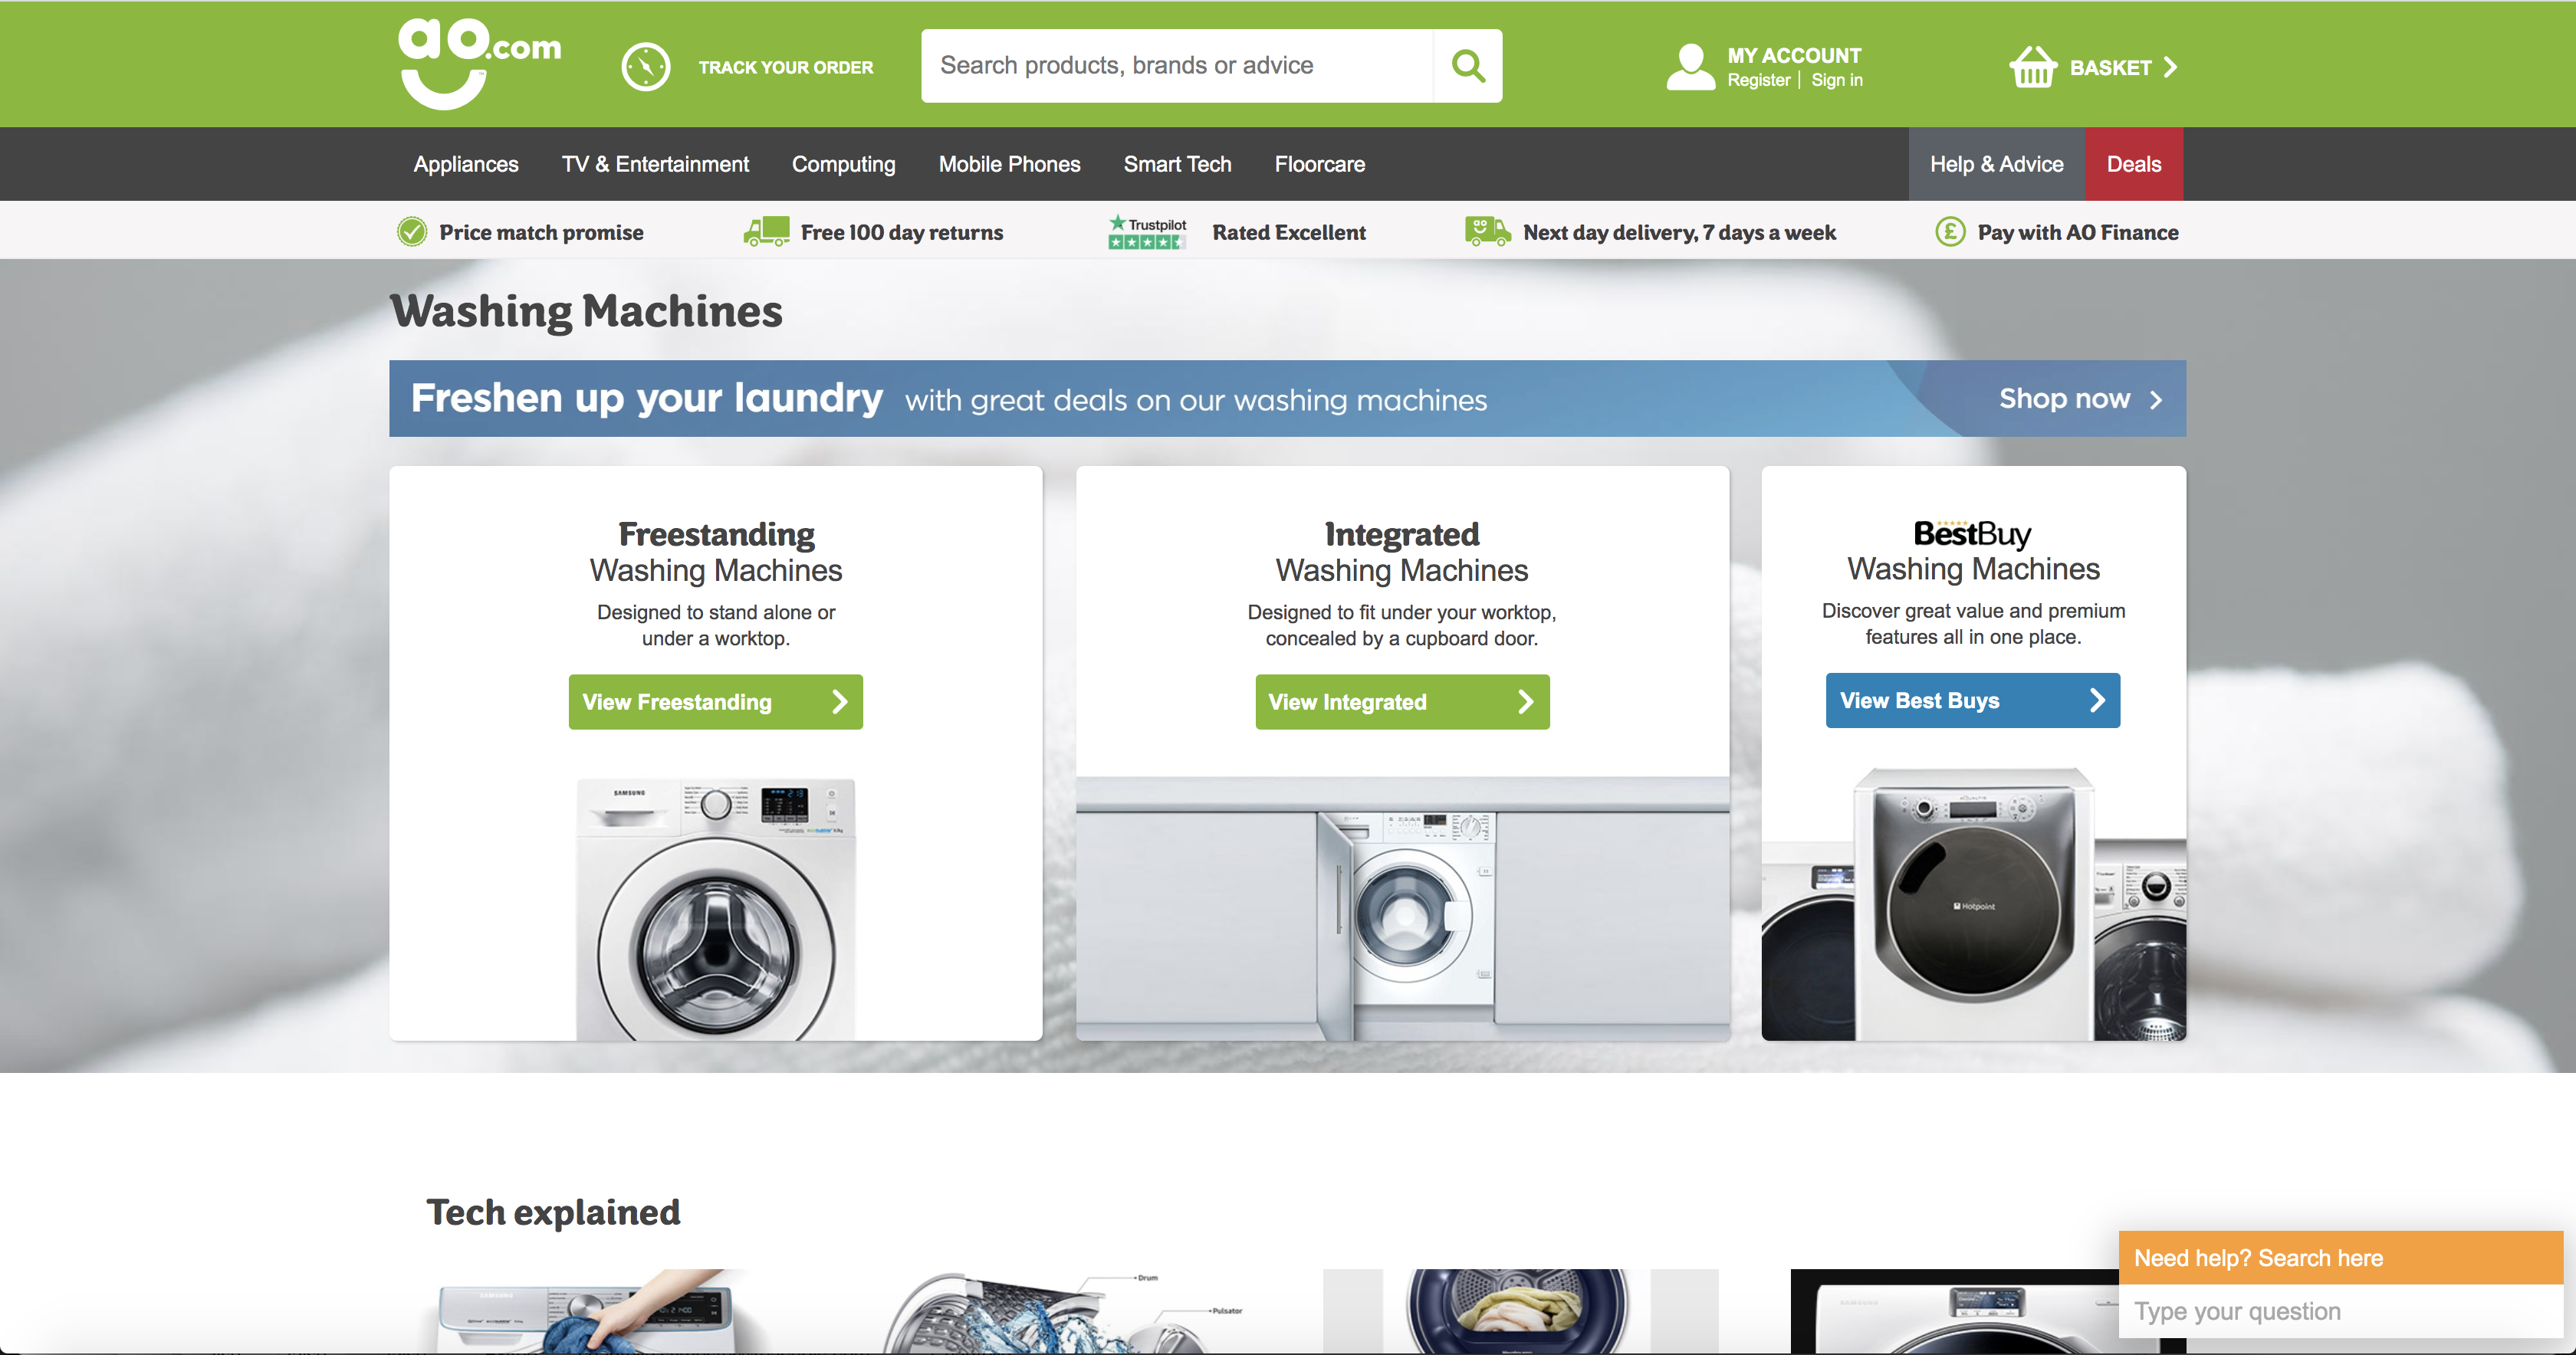 AO.com Washing Machines Category